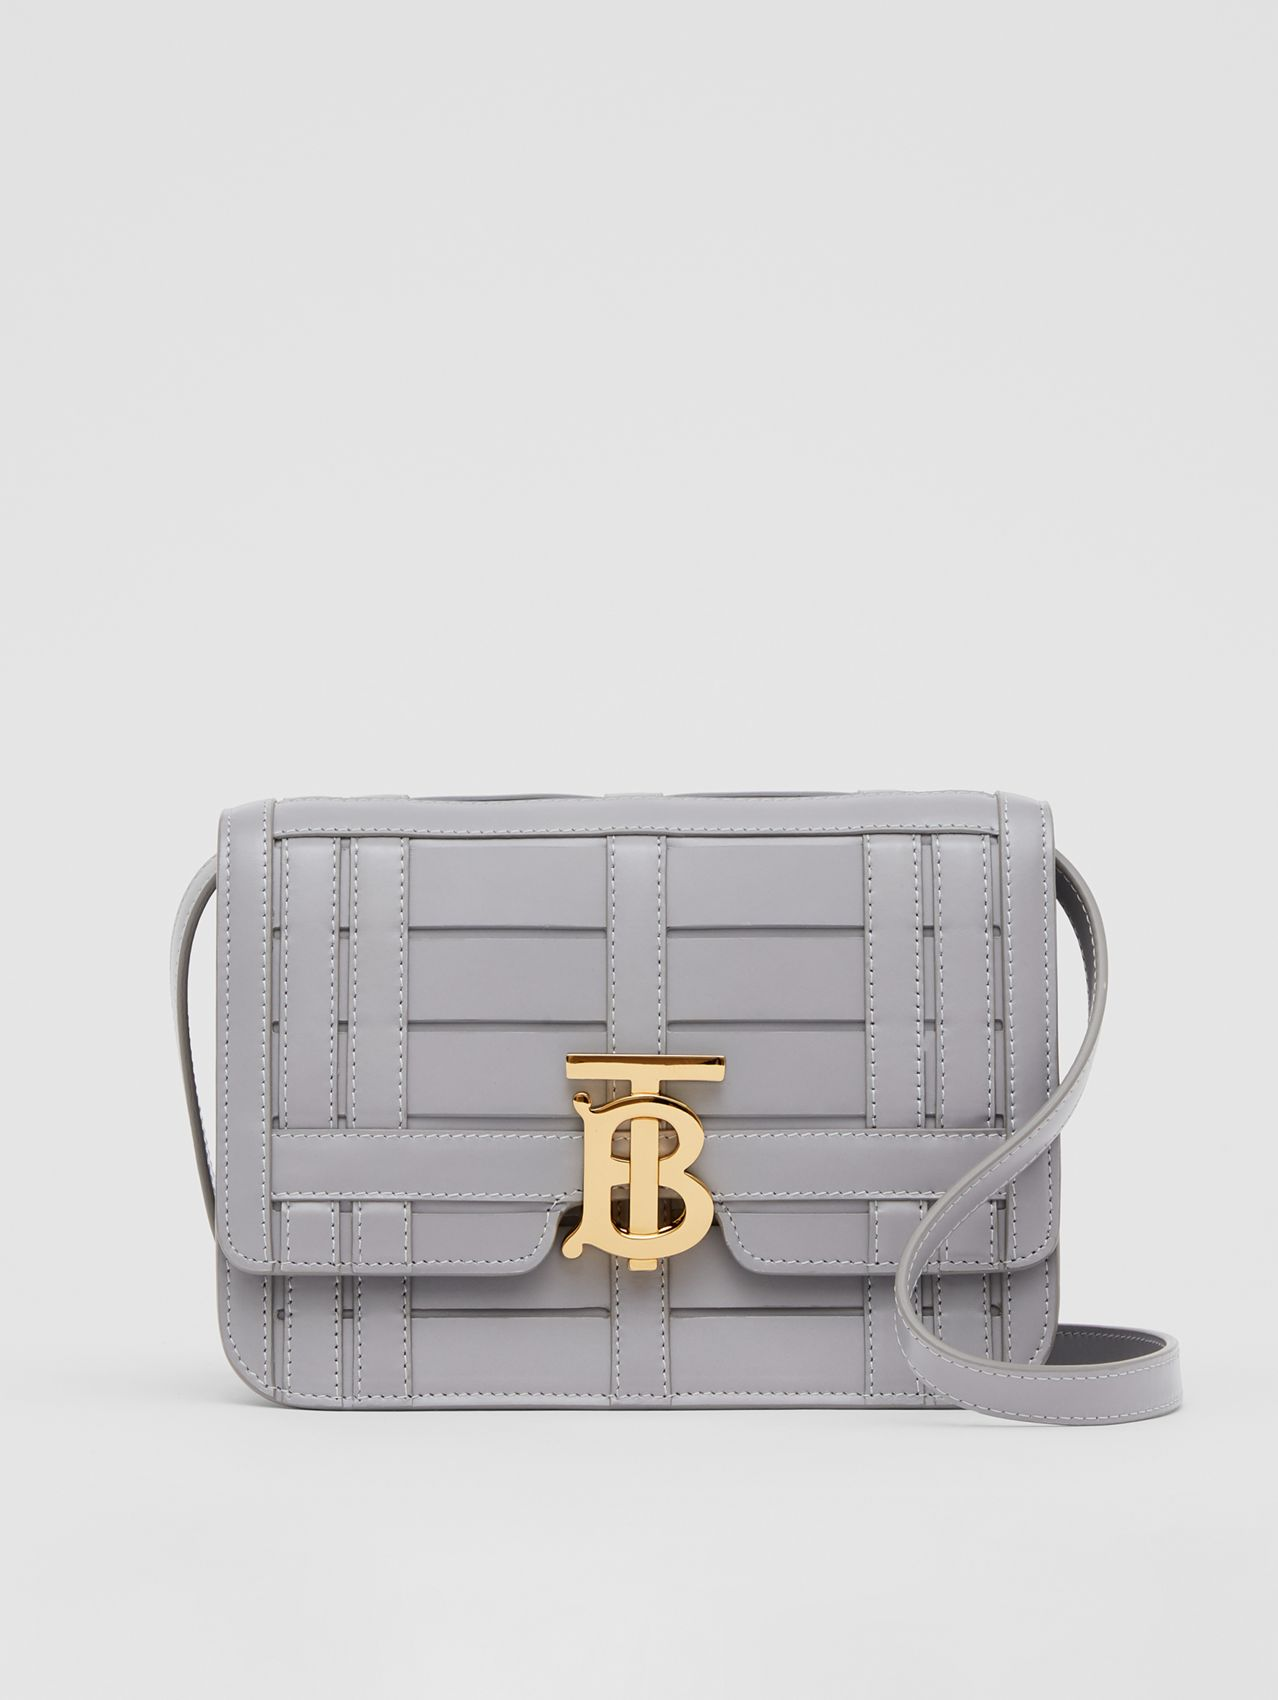 Small Woven Leather TB Bag in Cloud Grey